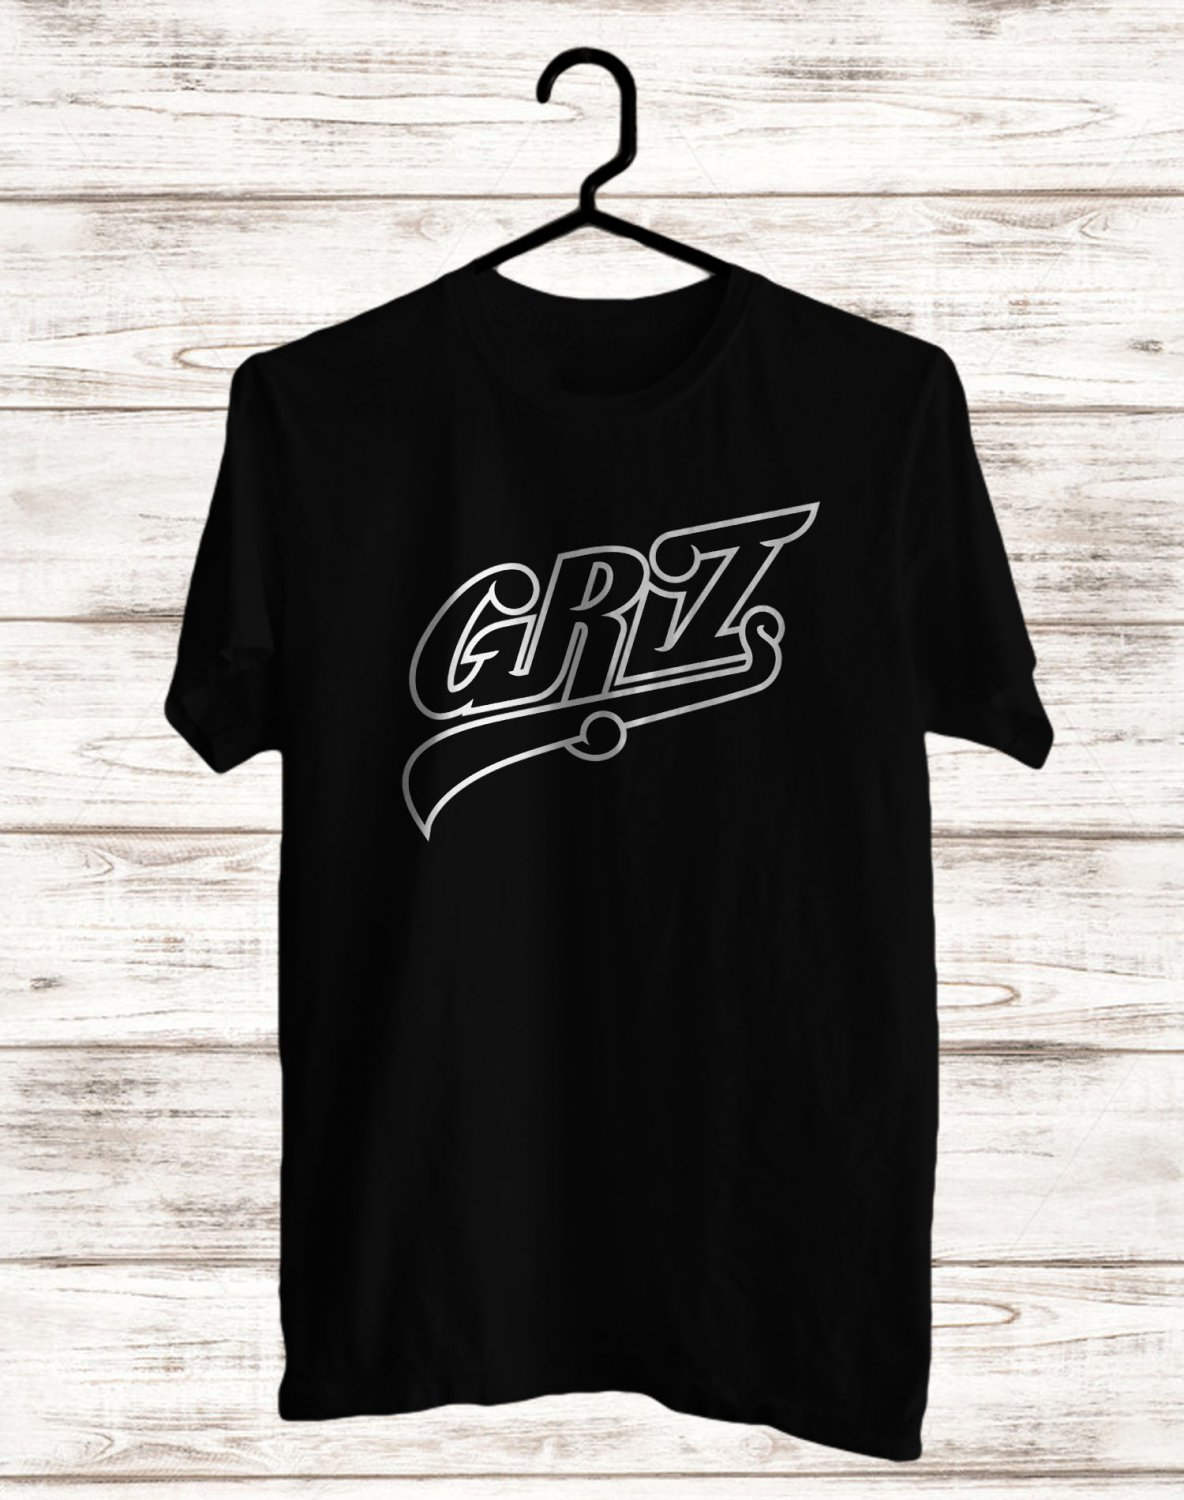 Grizz Logo Black Tee's Front Side by Complexart z1